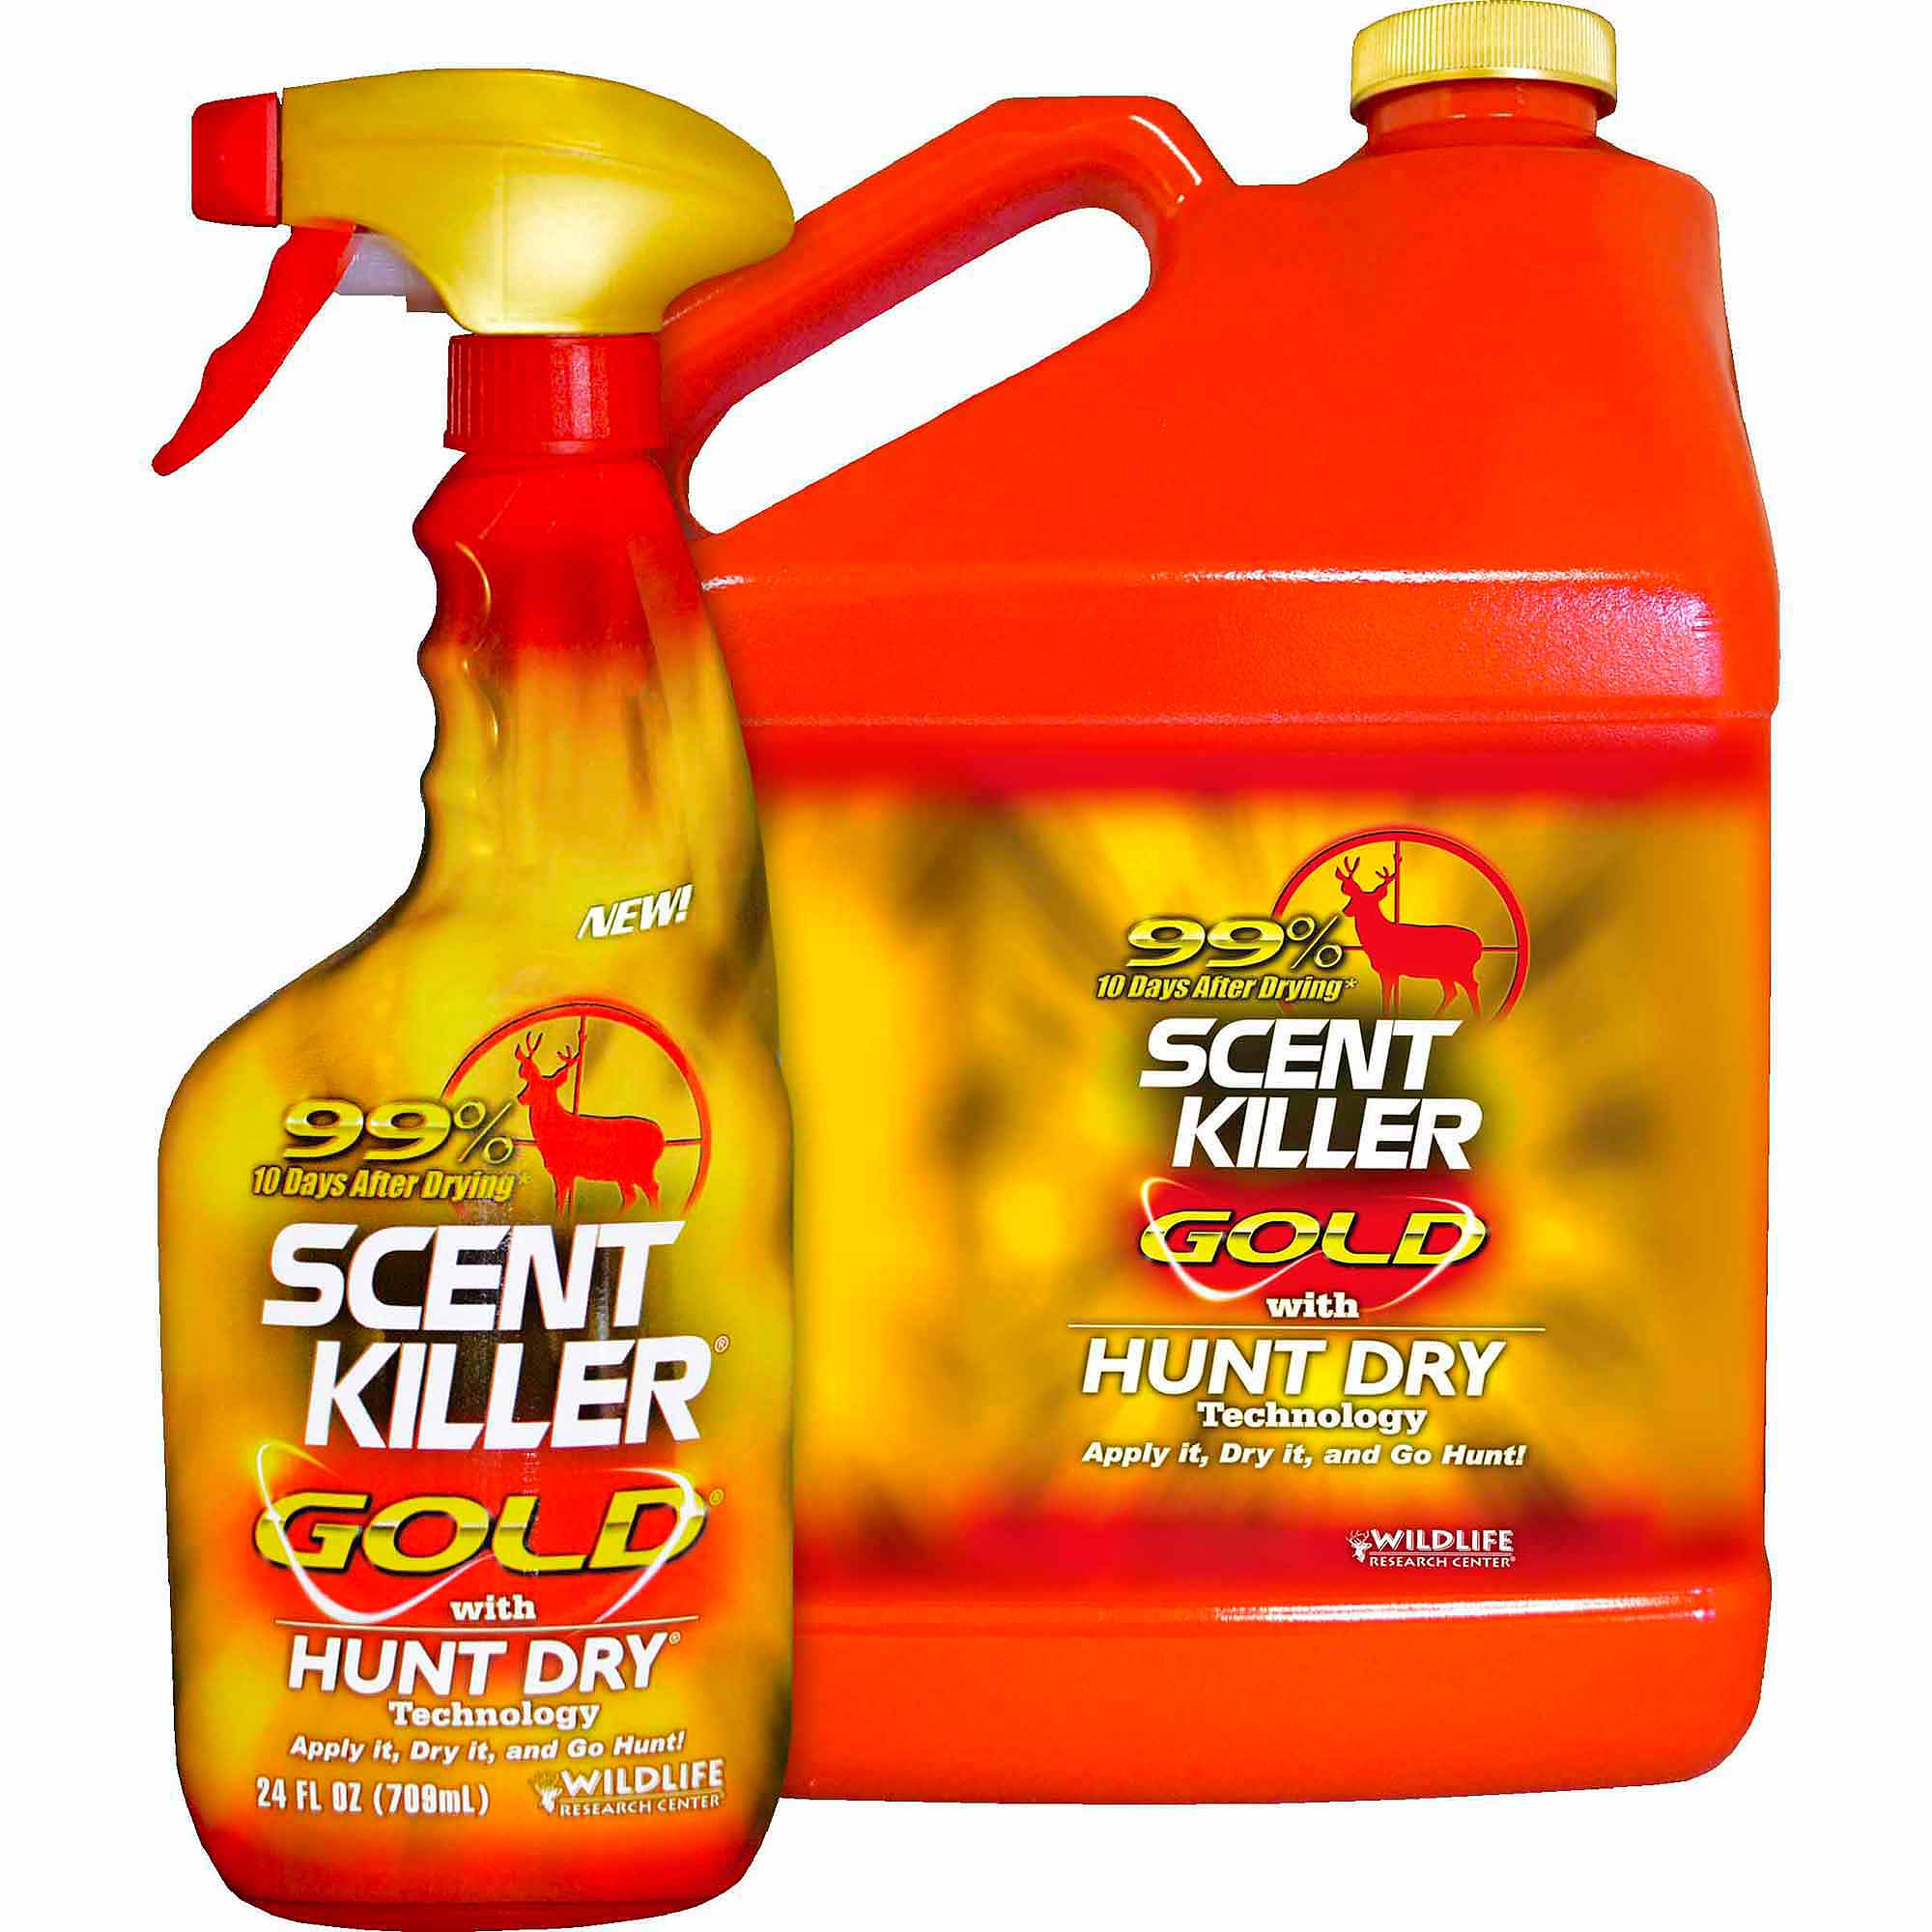 Wildlife Research Center Scent Killer Gold Spray Gallon Combo, 24 fl oz + 1 Gallon Refill Bottle